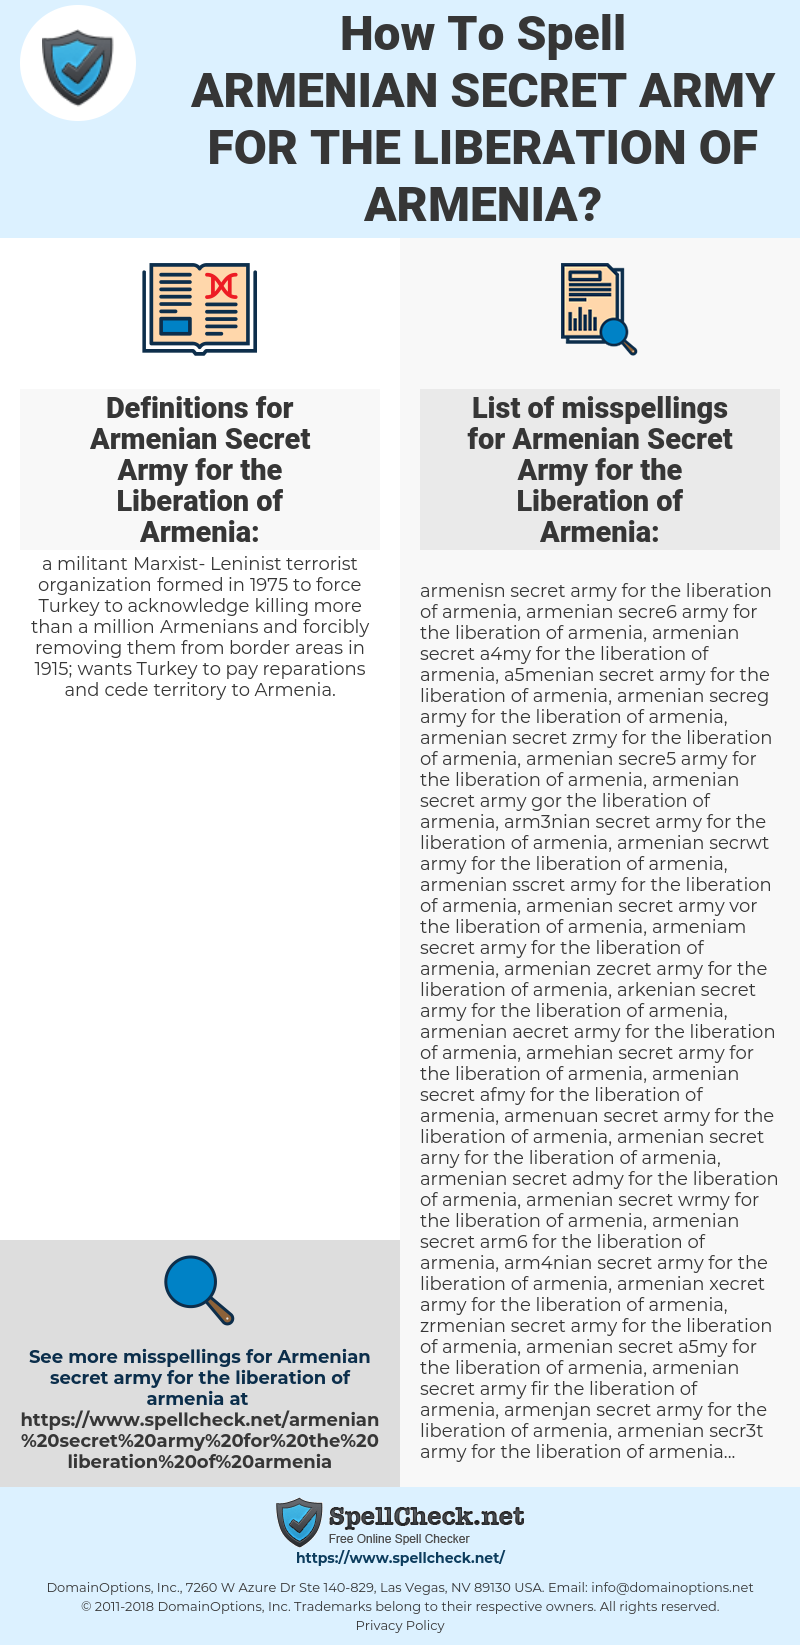 Armenian Secret Army for the Liberation of Armenia, spellcheck Armenian Secret Army for the Liberation of Armenia, how to spell Armenian Secret Army for the Liberation of Armenia, how do you spell Armenian Secret Army for the Liberation of Armenia, correct spelling for Armenian Secret Army for the Liberation of Armenia